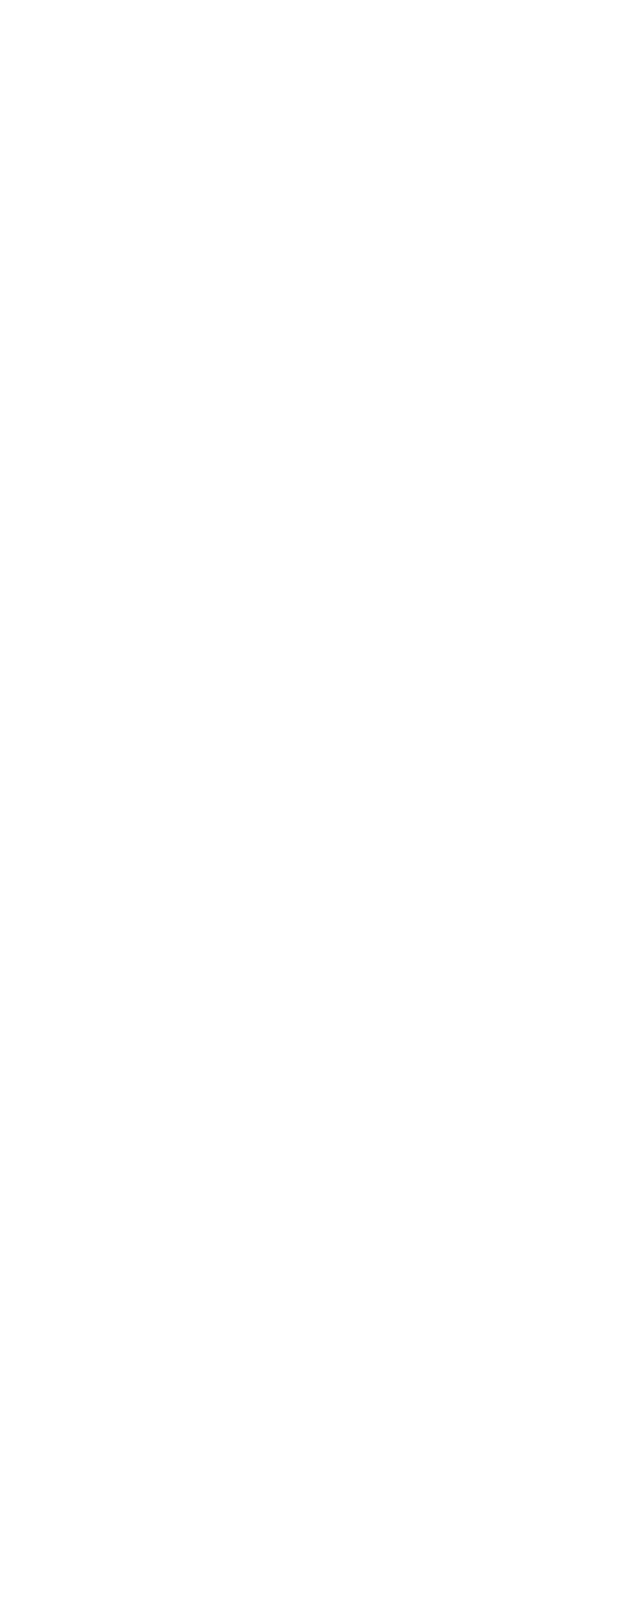 R6Outboard-floor plans